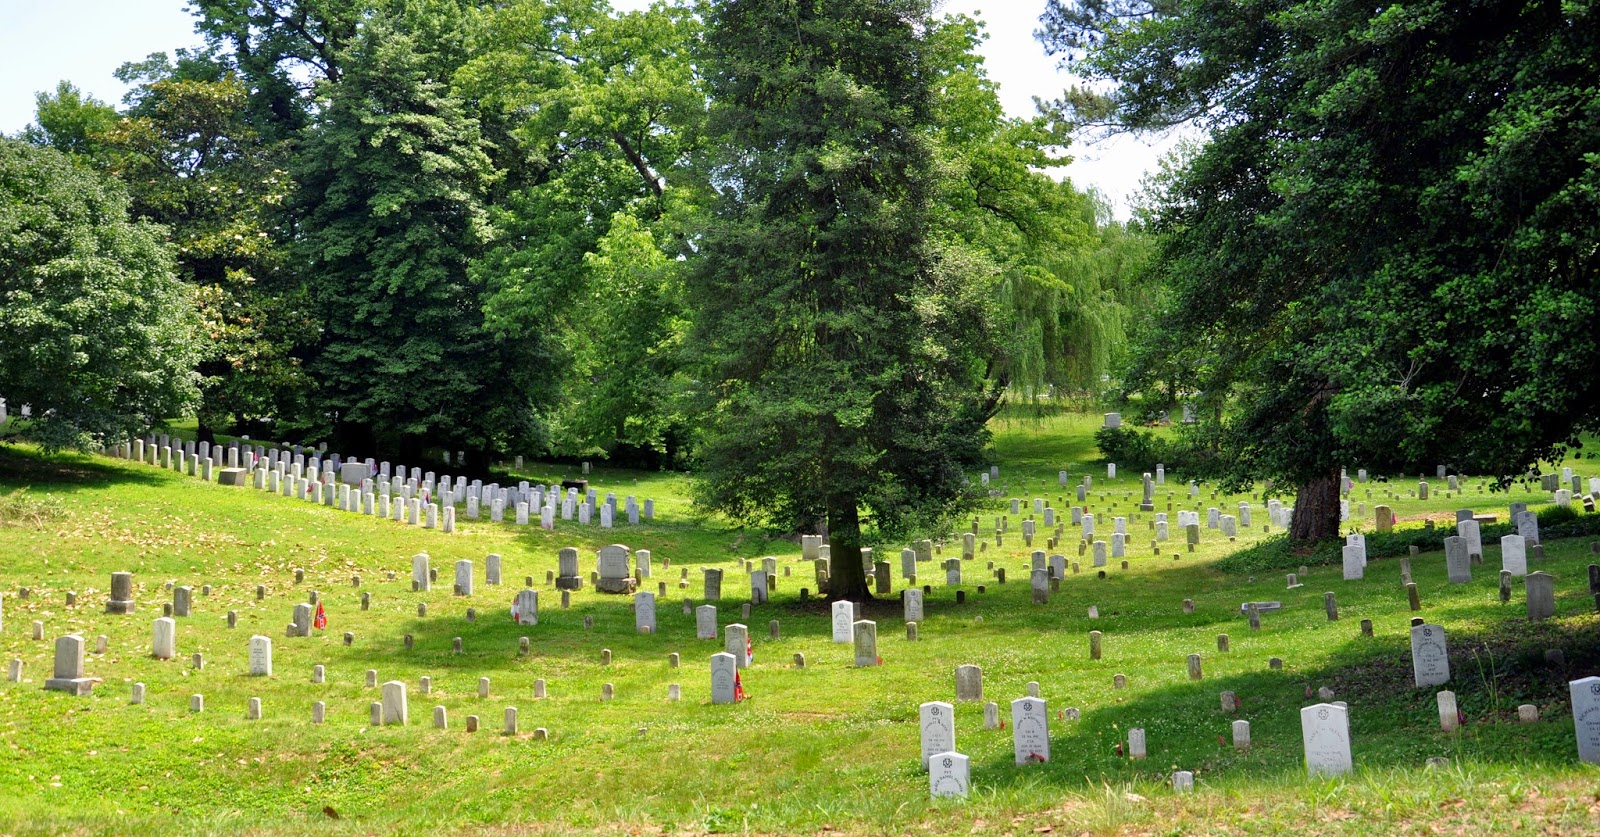 the concept behind the graves at hollywood cemetary